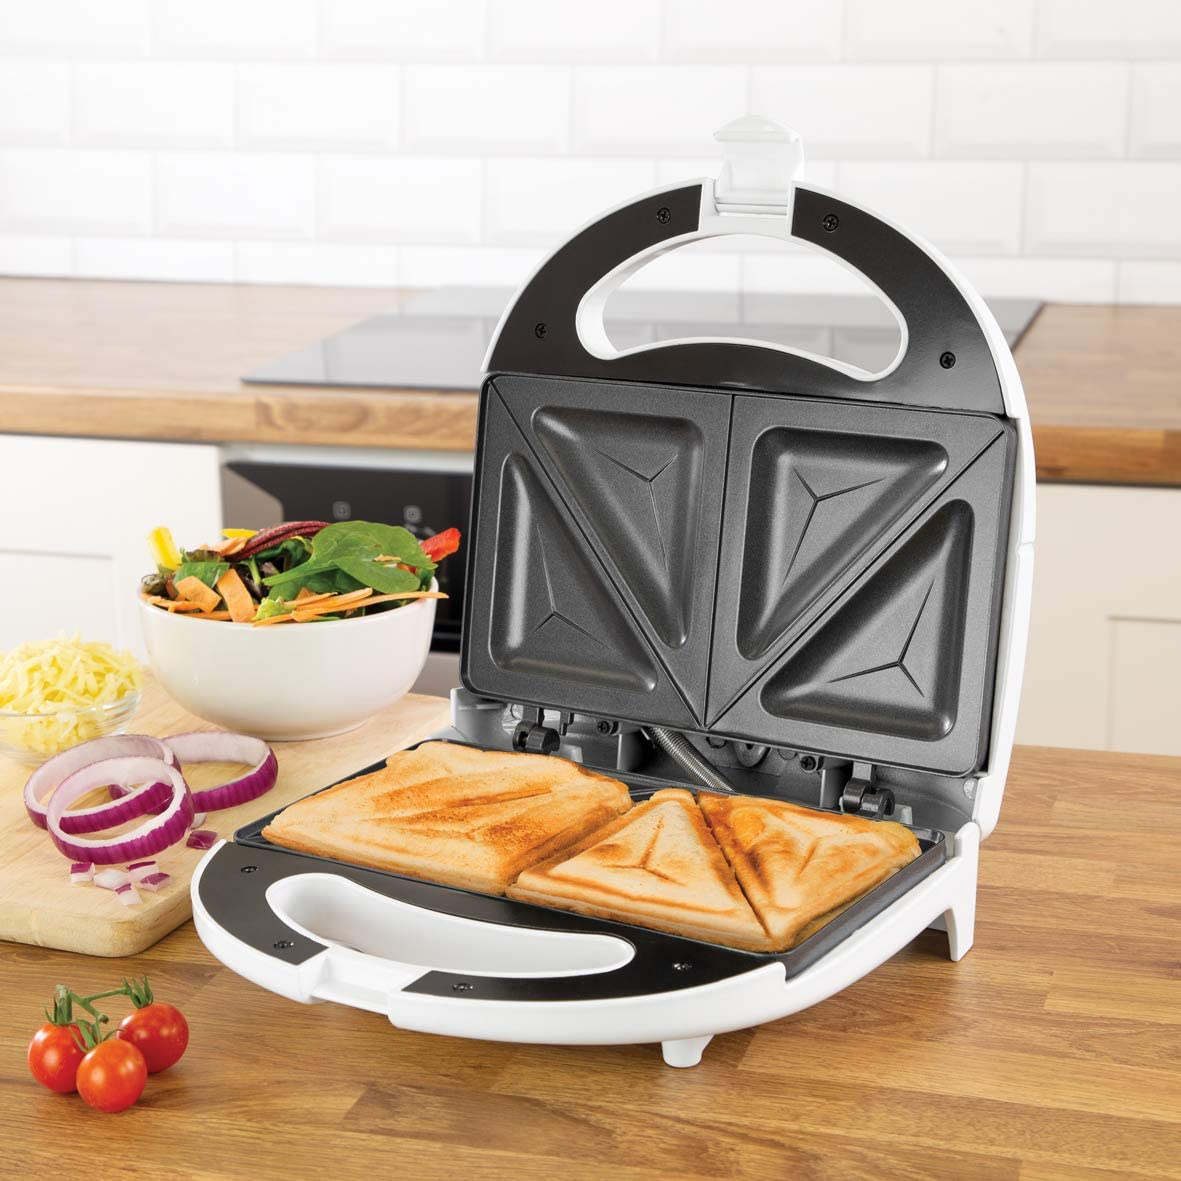 Quest 35129 Sandwich Toastie Maker | Black | 750W Stick Hot Plates | Non-Slip Rubber Feet | Cool Touch Handle, 750 W White